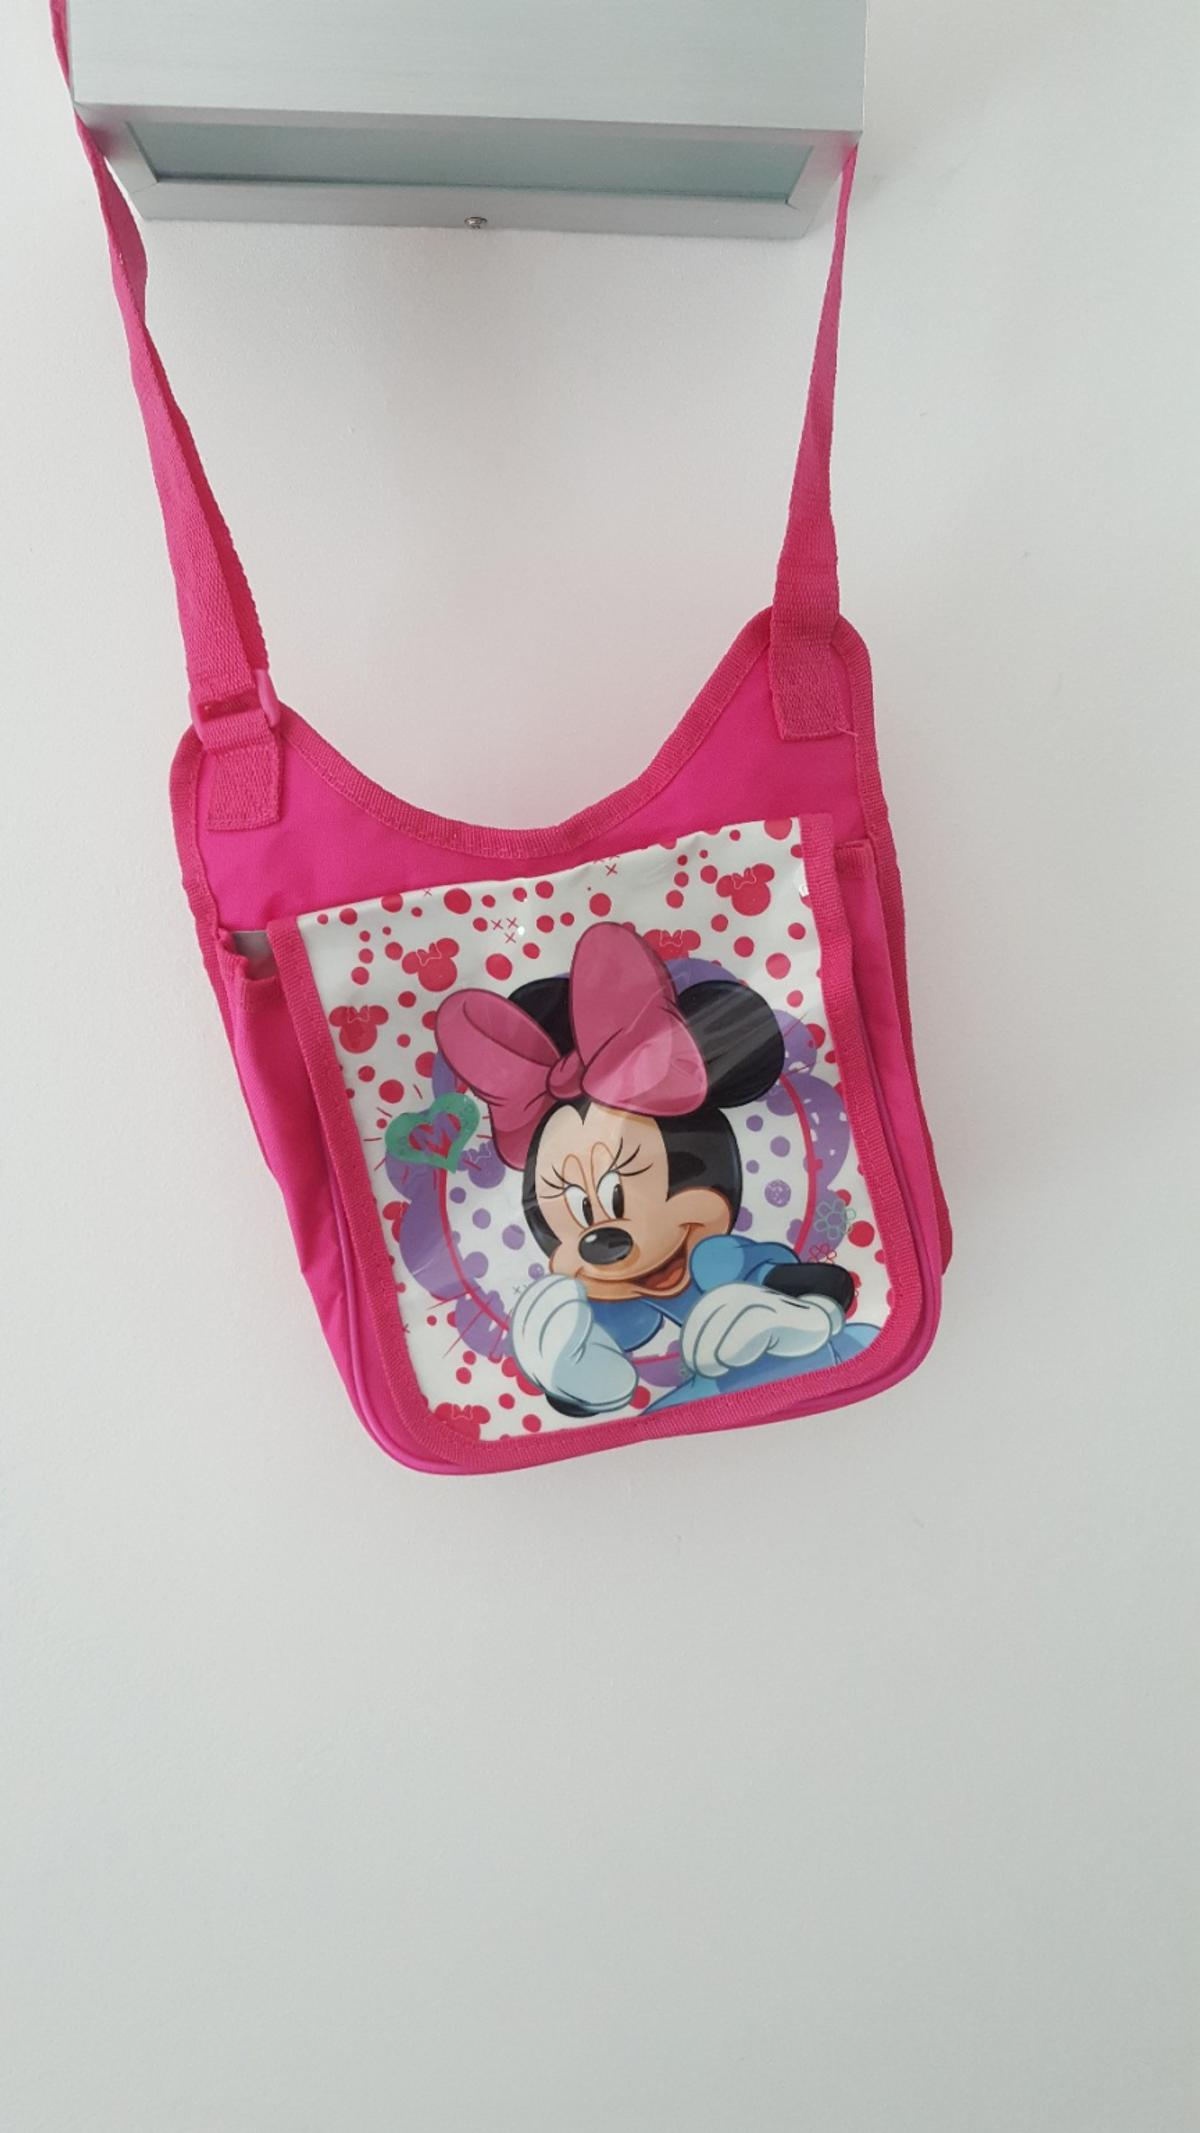 Minnie Maus Teppich in Stein for €14.00 for sale   Shpock